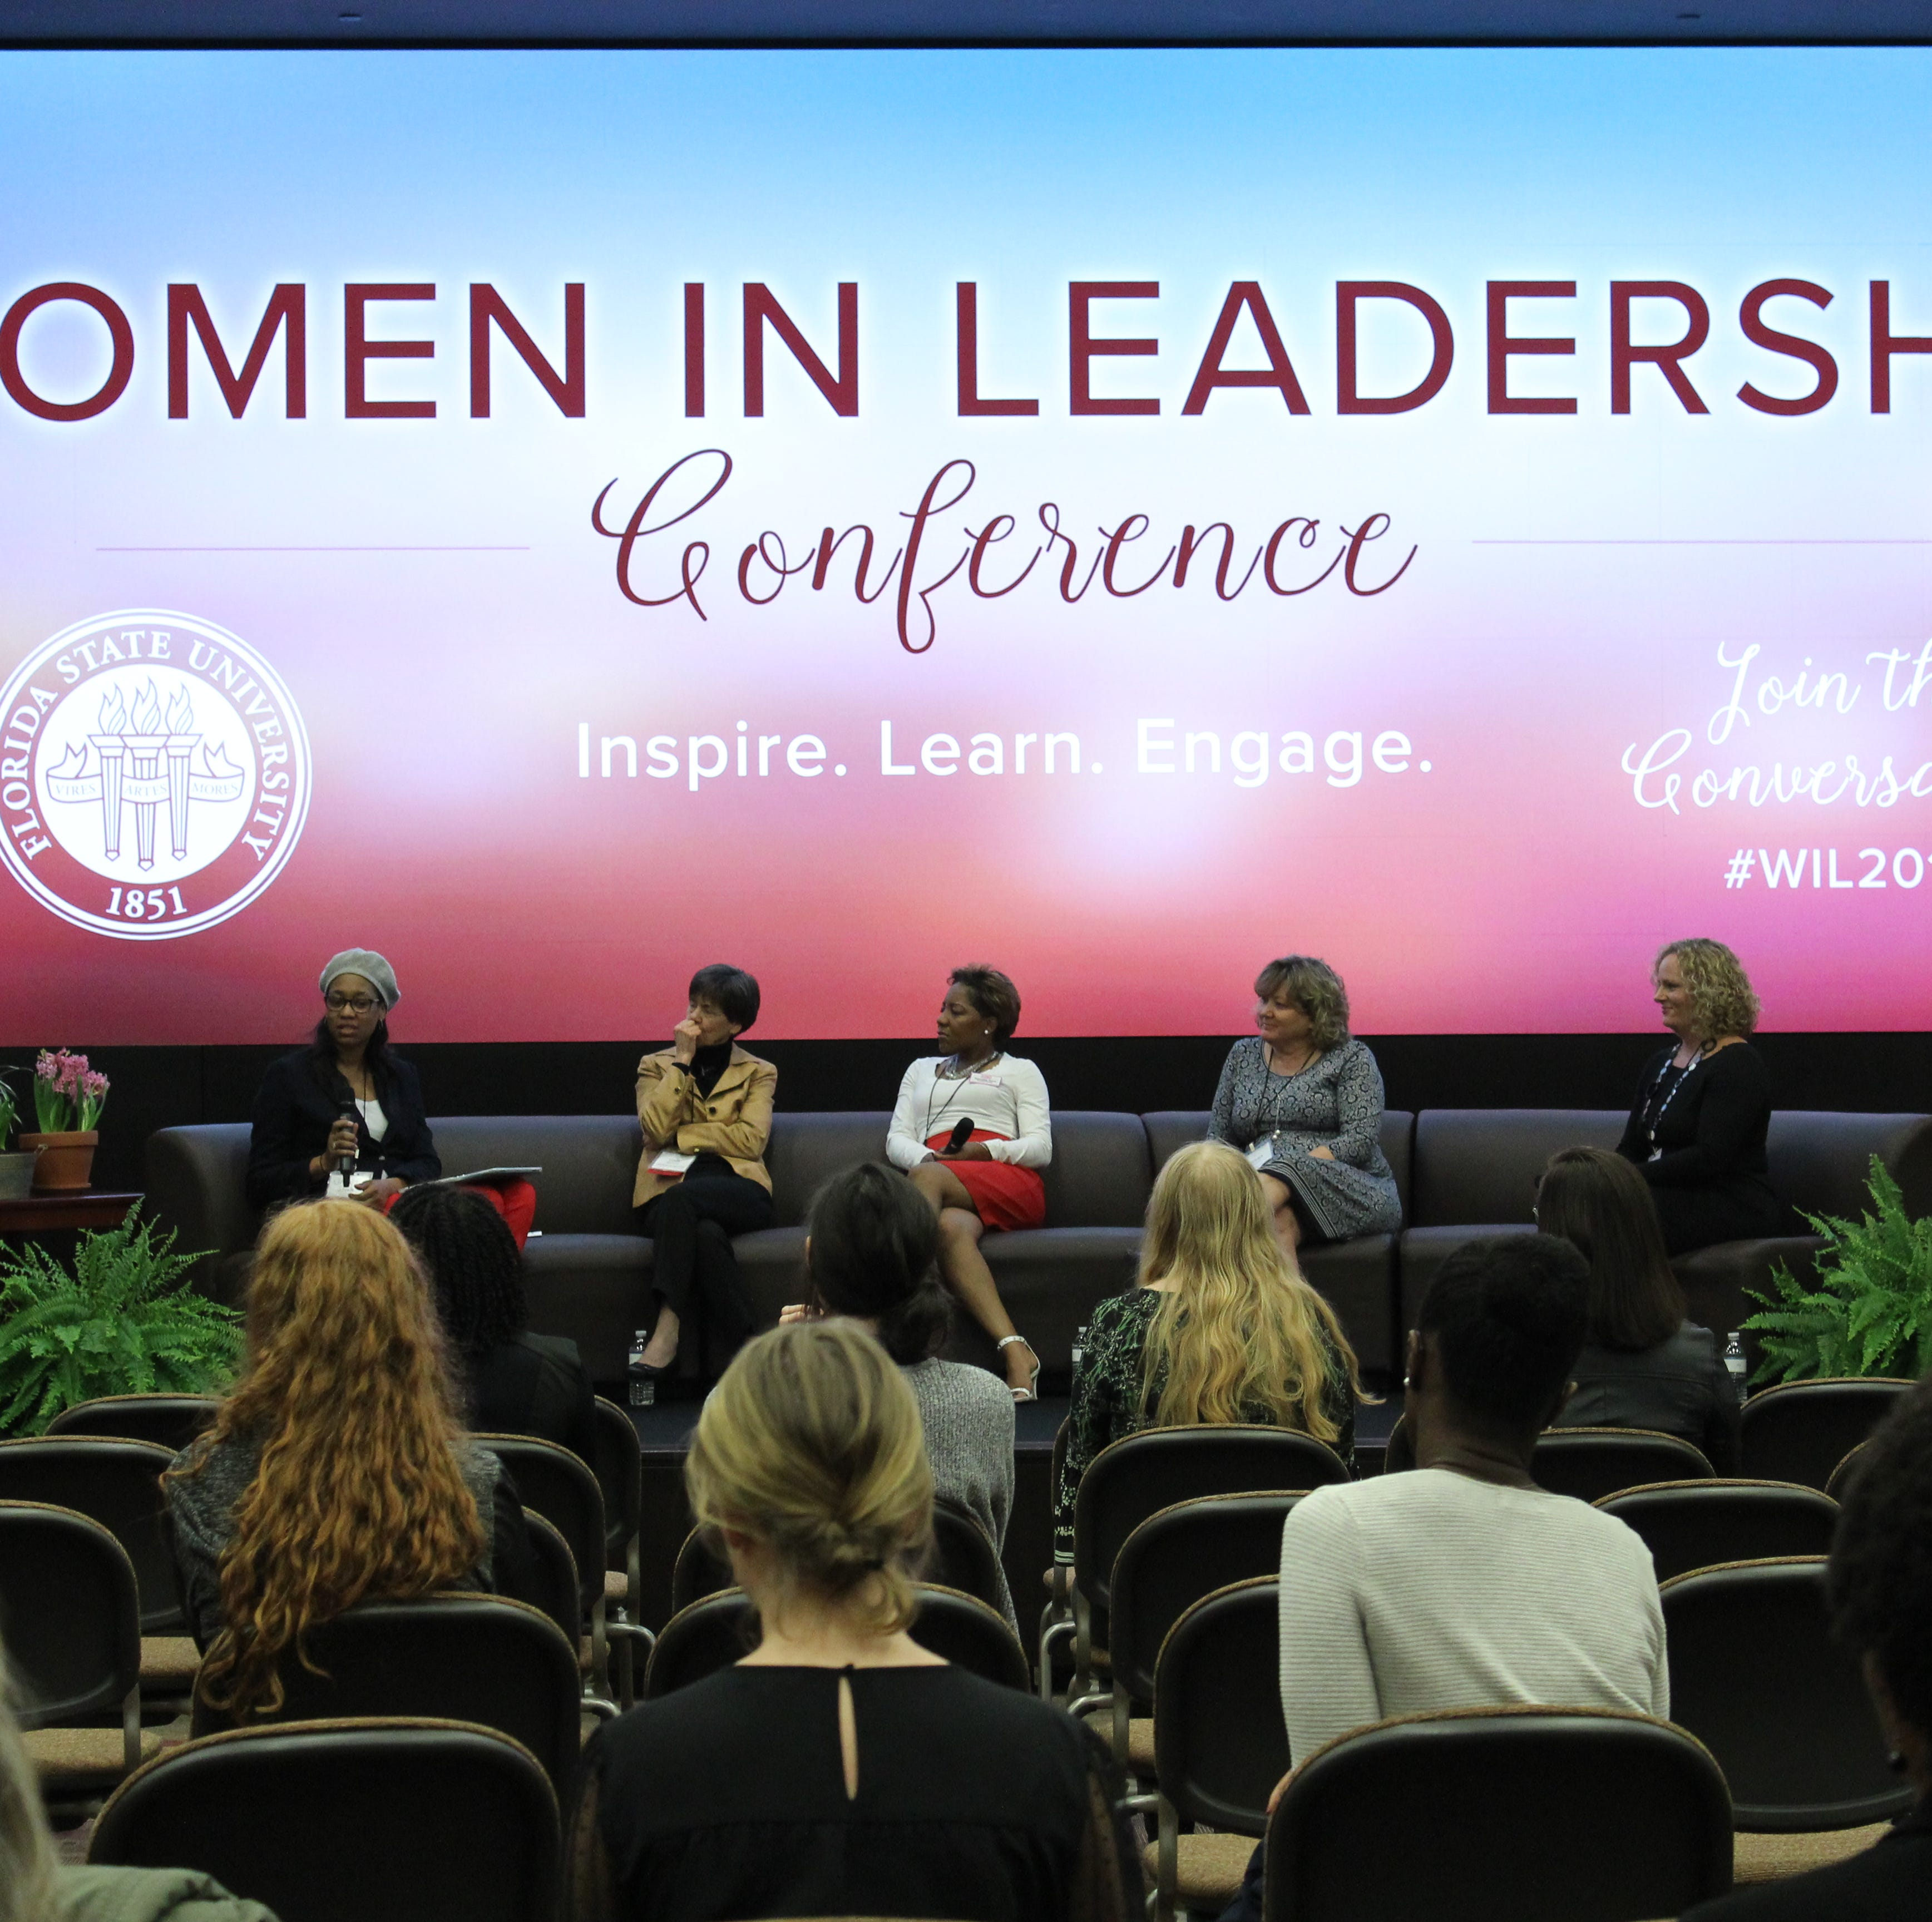 FSU celebrates women in leadership at annual conference